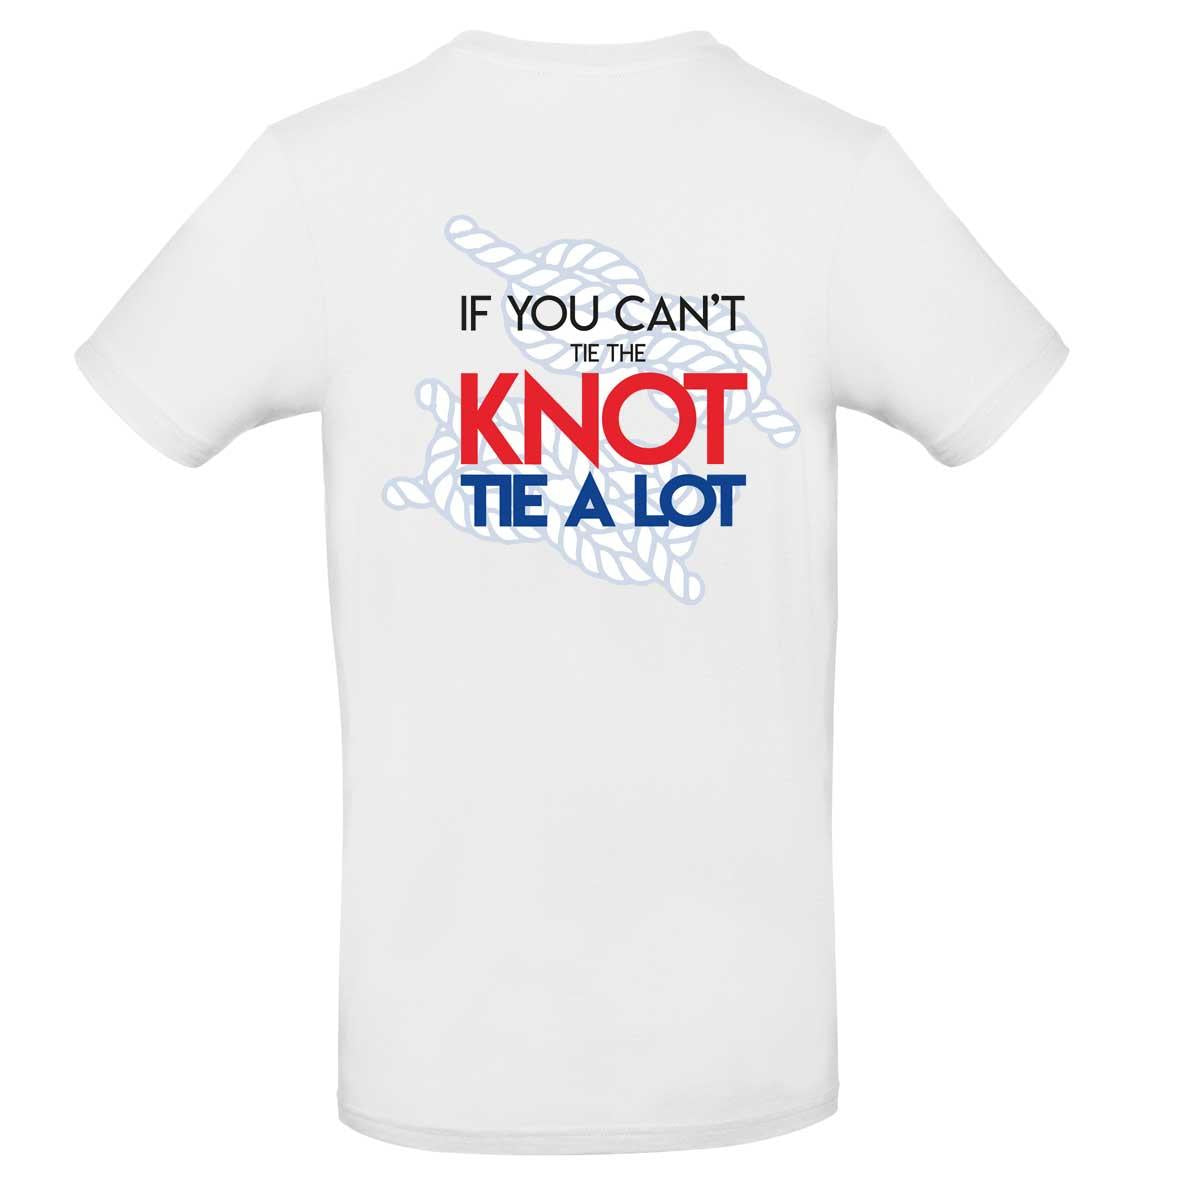 Mens T-Shirt - If You Can't Tie The Knot Tie A Lot